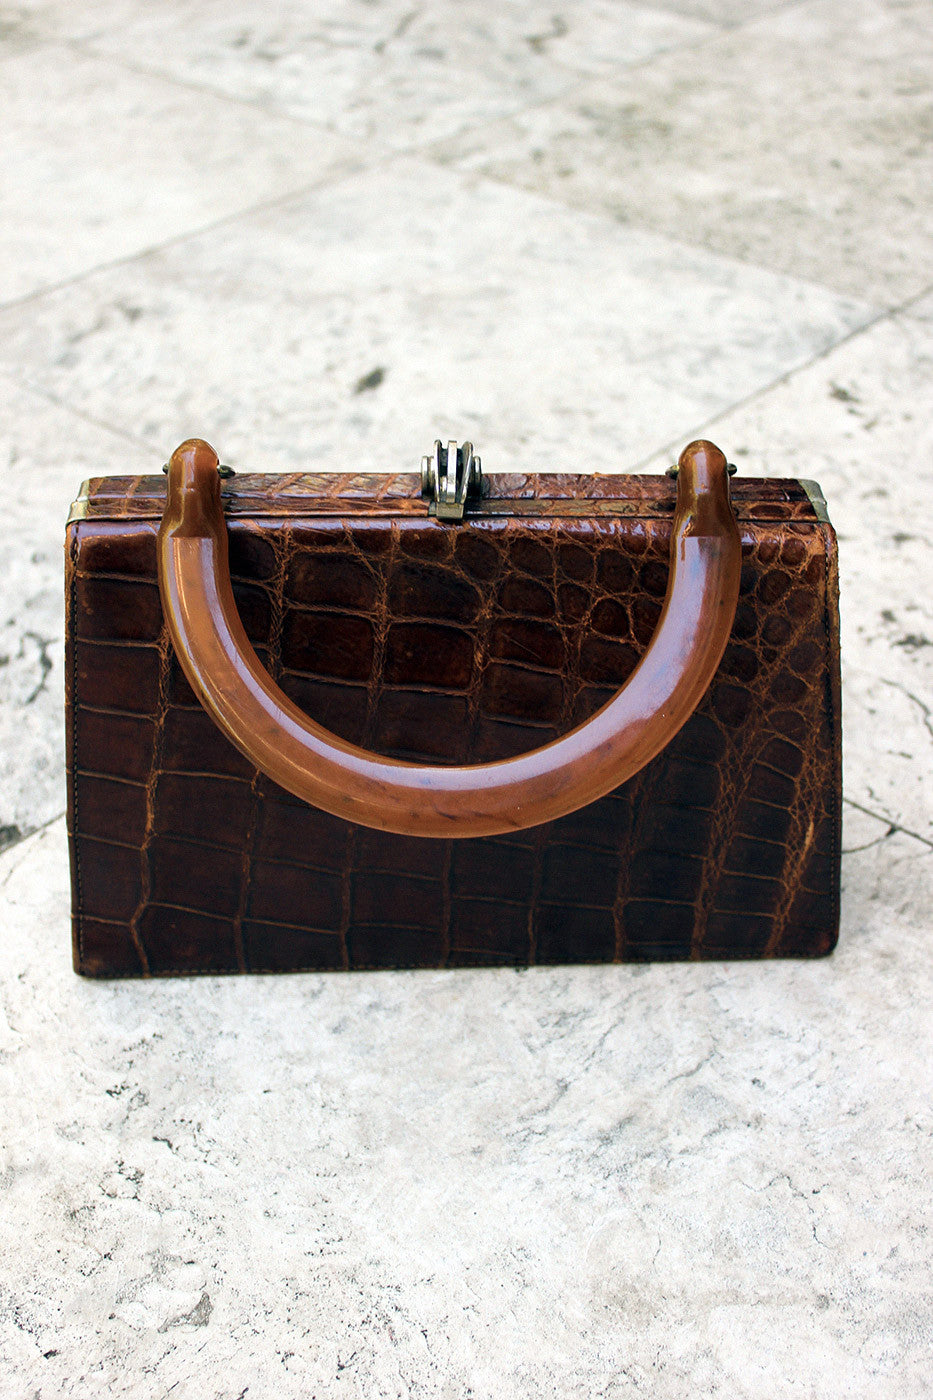 Vintage 1940s Genuine Crocodile Skin Handbag with Bakelite Handle